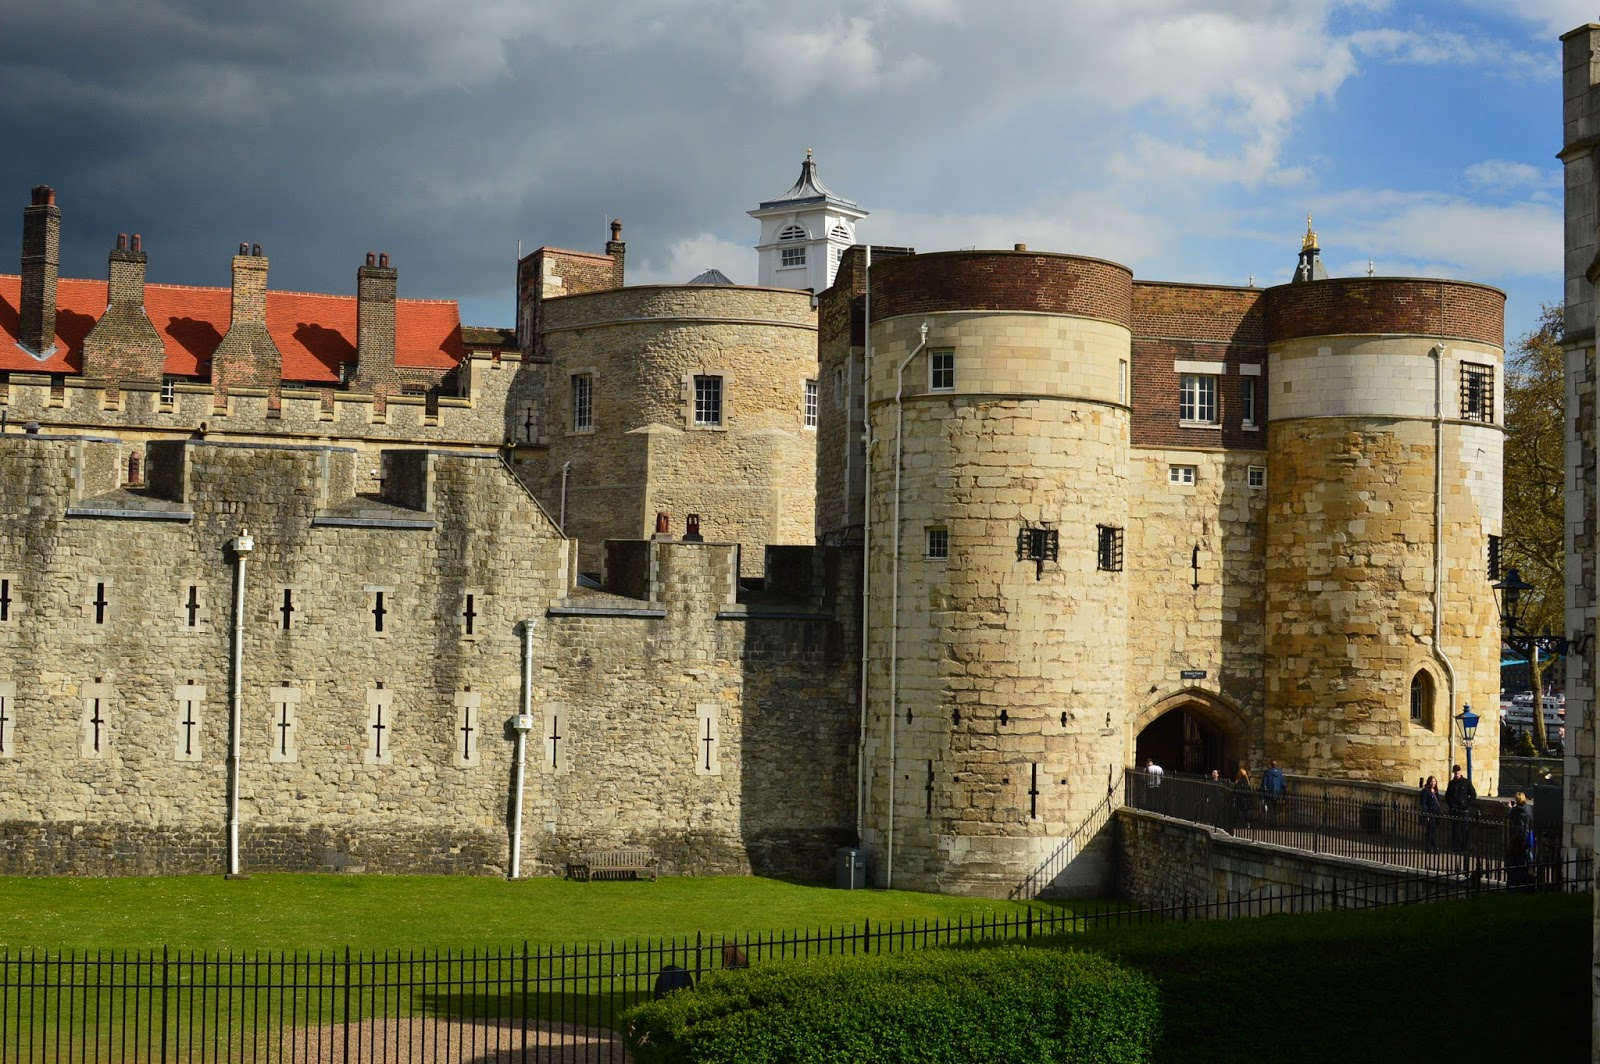 Tower of London London | Things to do in London | Top 10 Things to do in London | Tips for Your First Time in London | Review of the Tower of London Tour